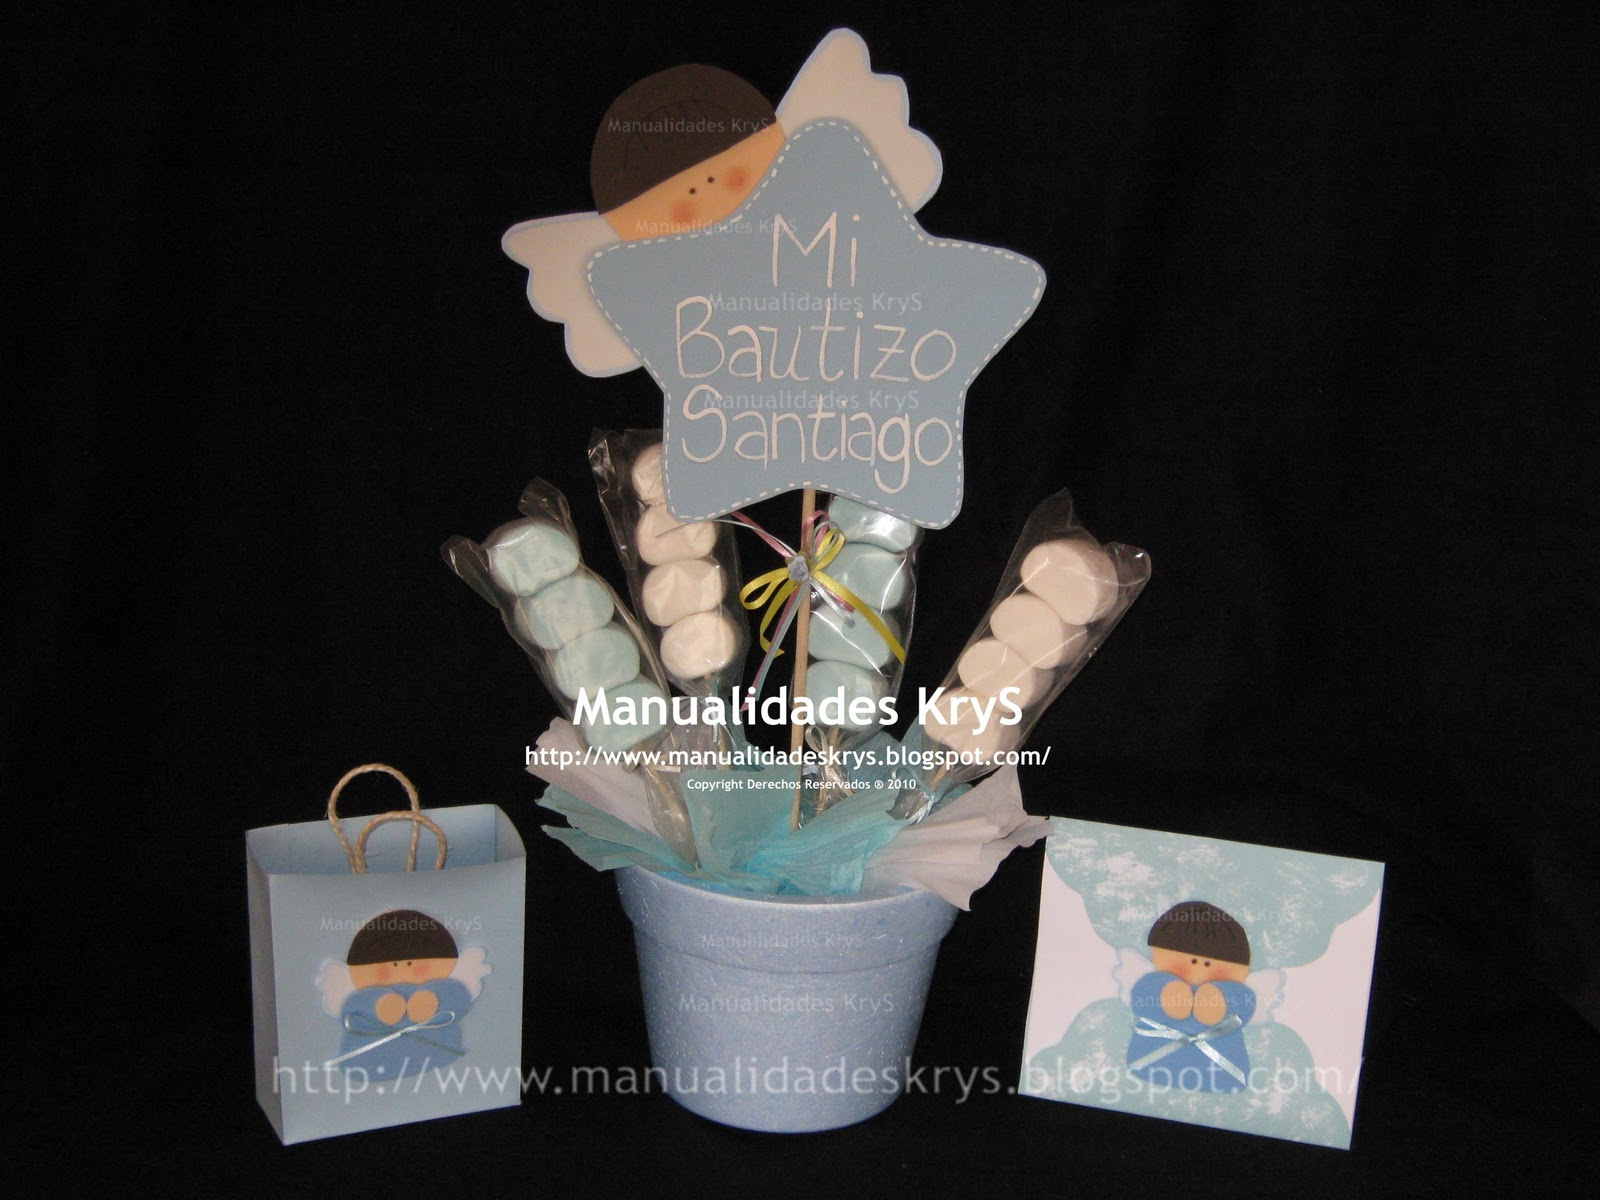 Manualidades krys baby shower y bautizo share the knownledge - Manualidades centro de mesa ...